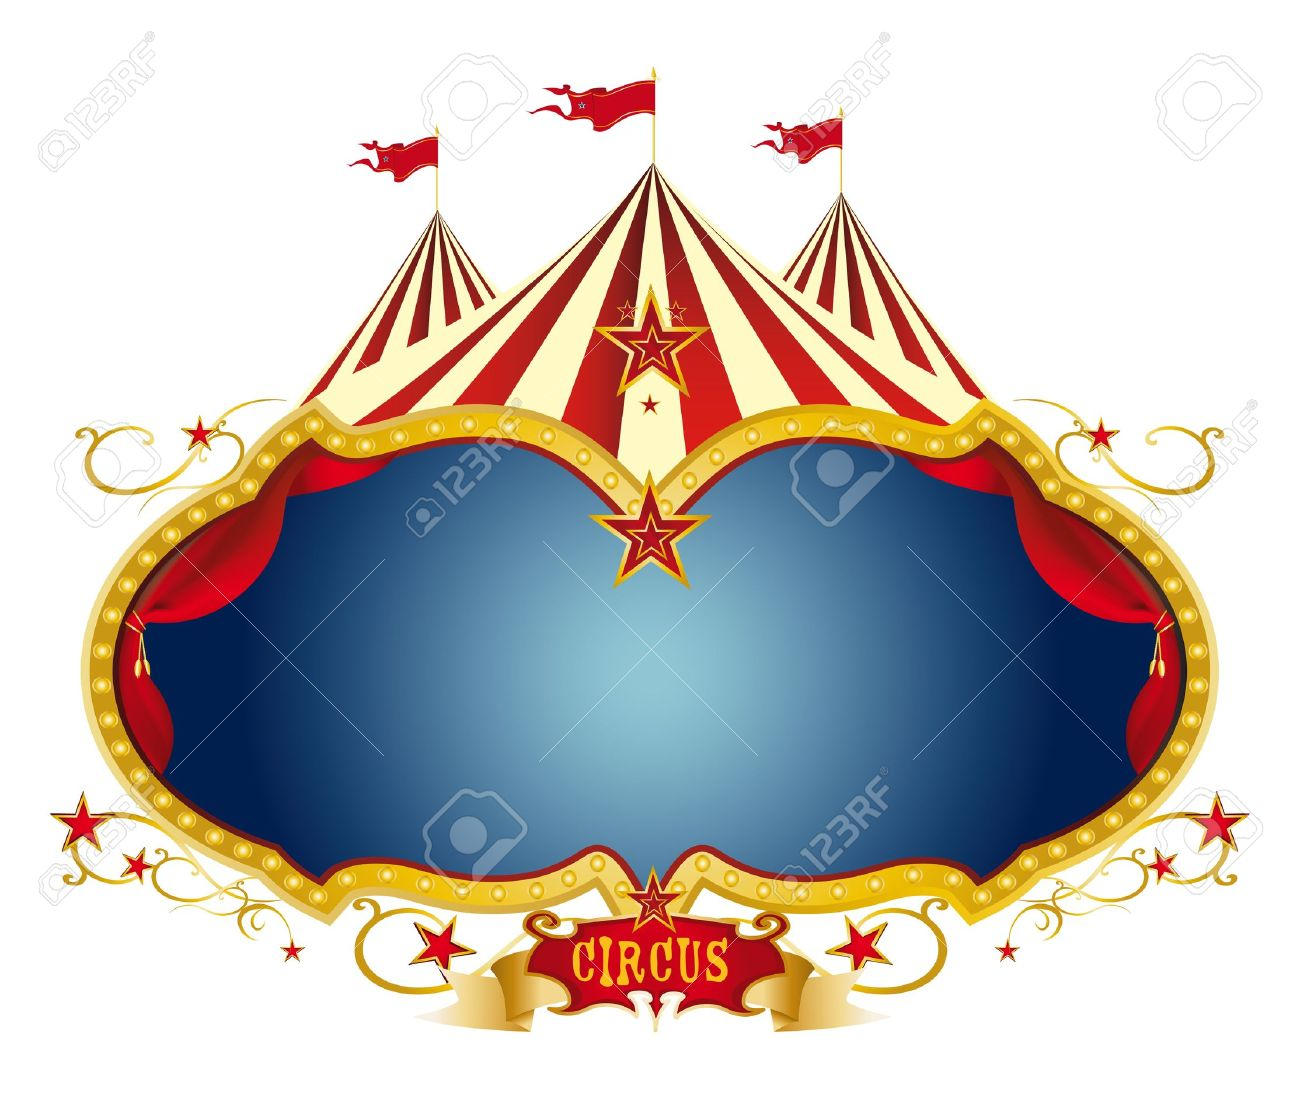 a circus frame with a big top and a large blue copy space for